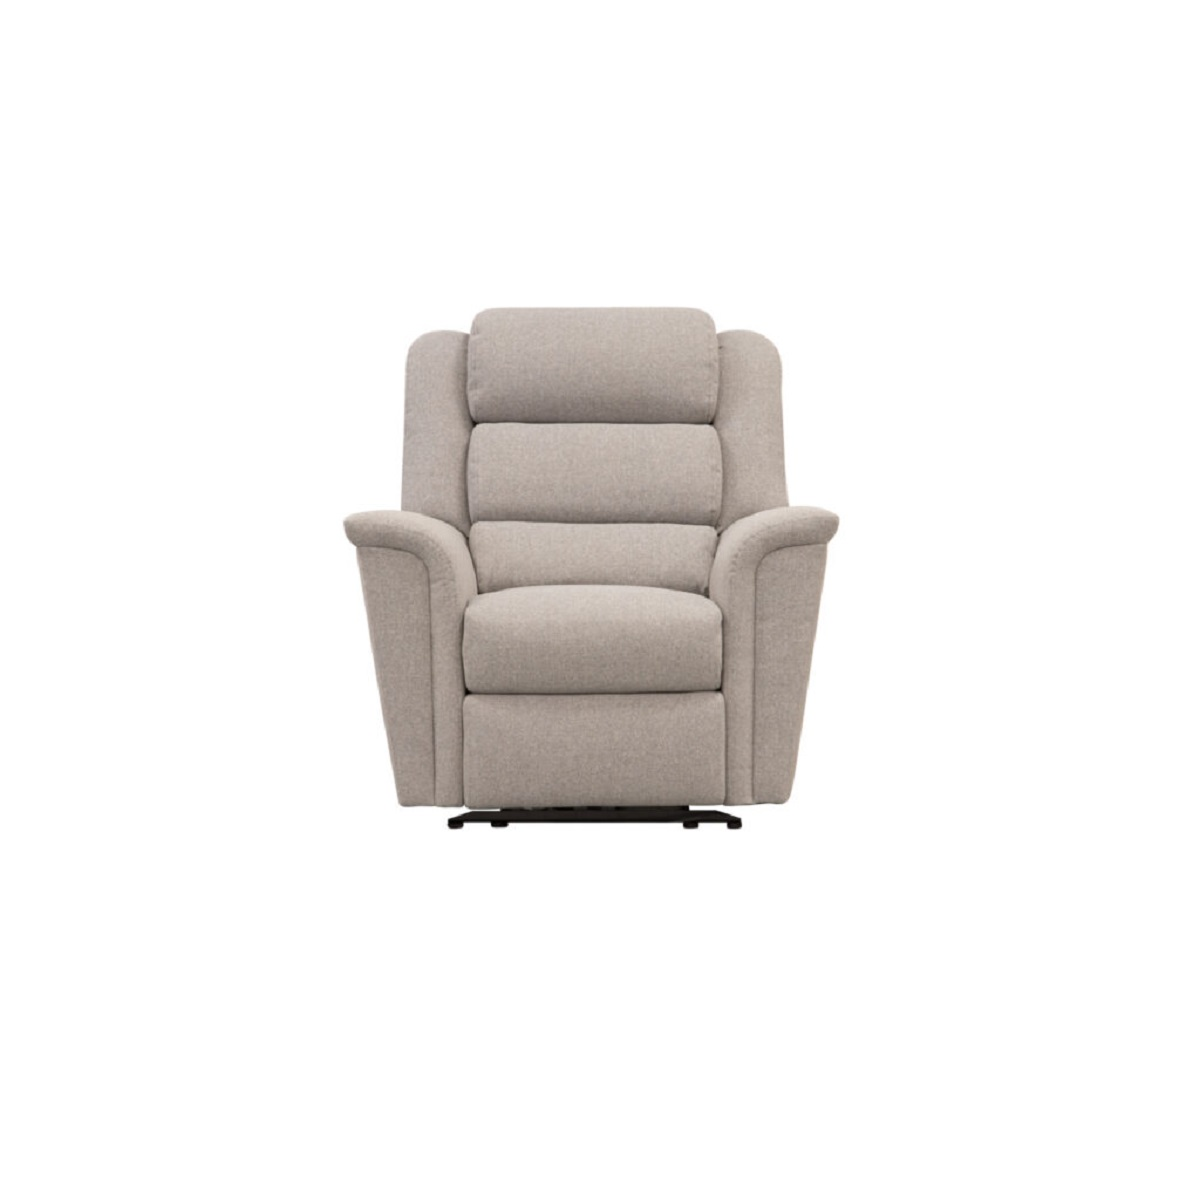 Colorado Small Recliner Armchair